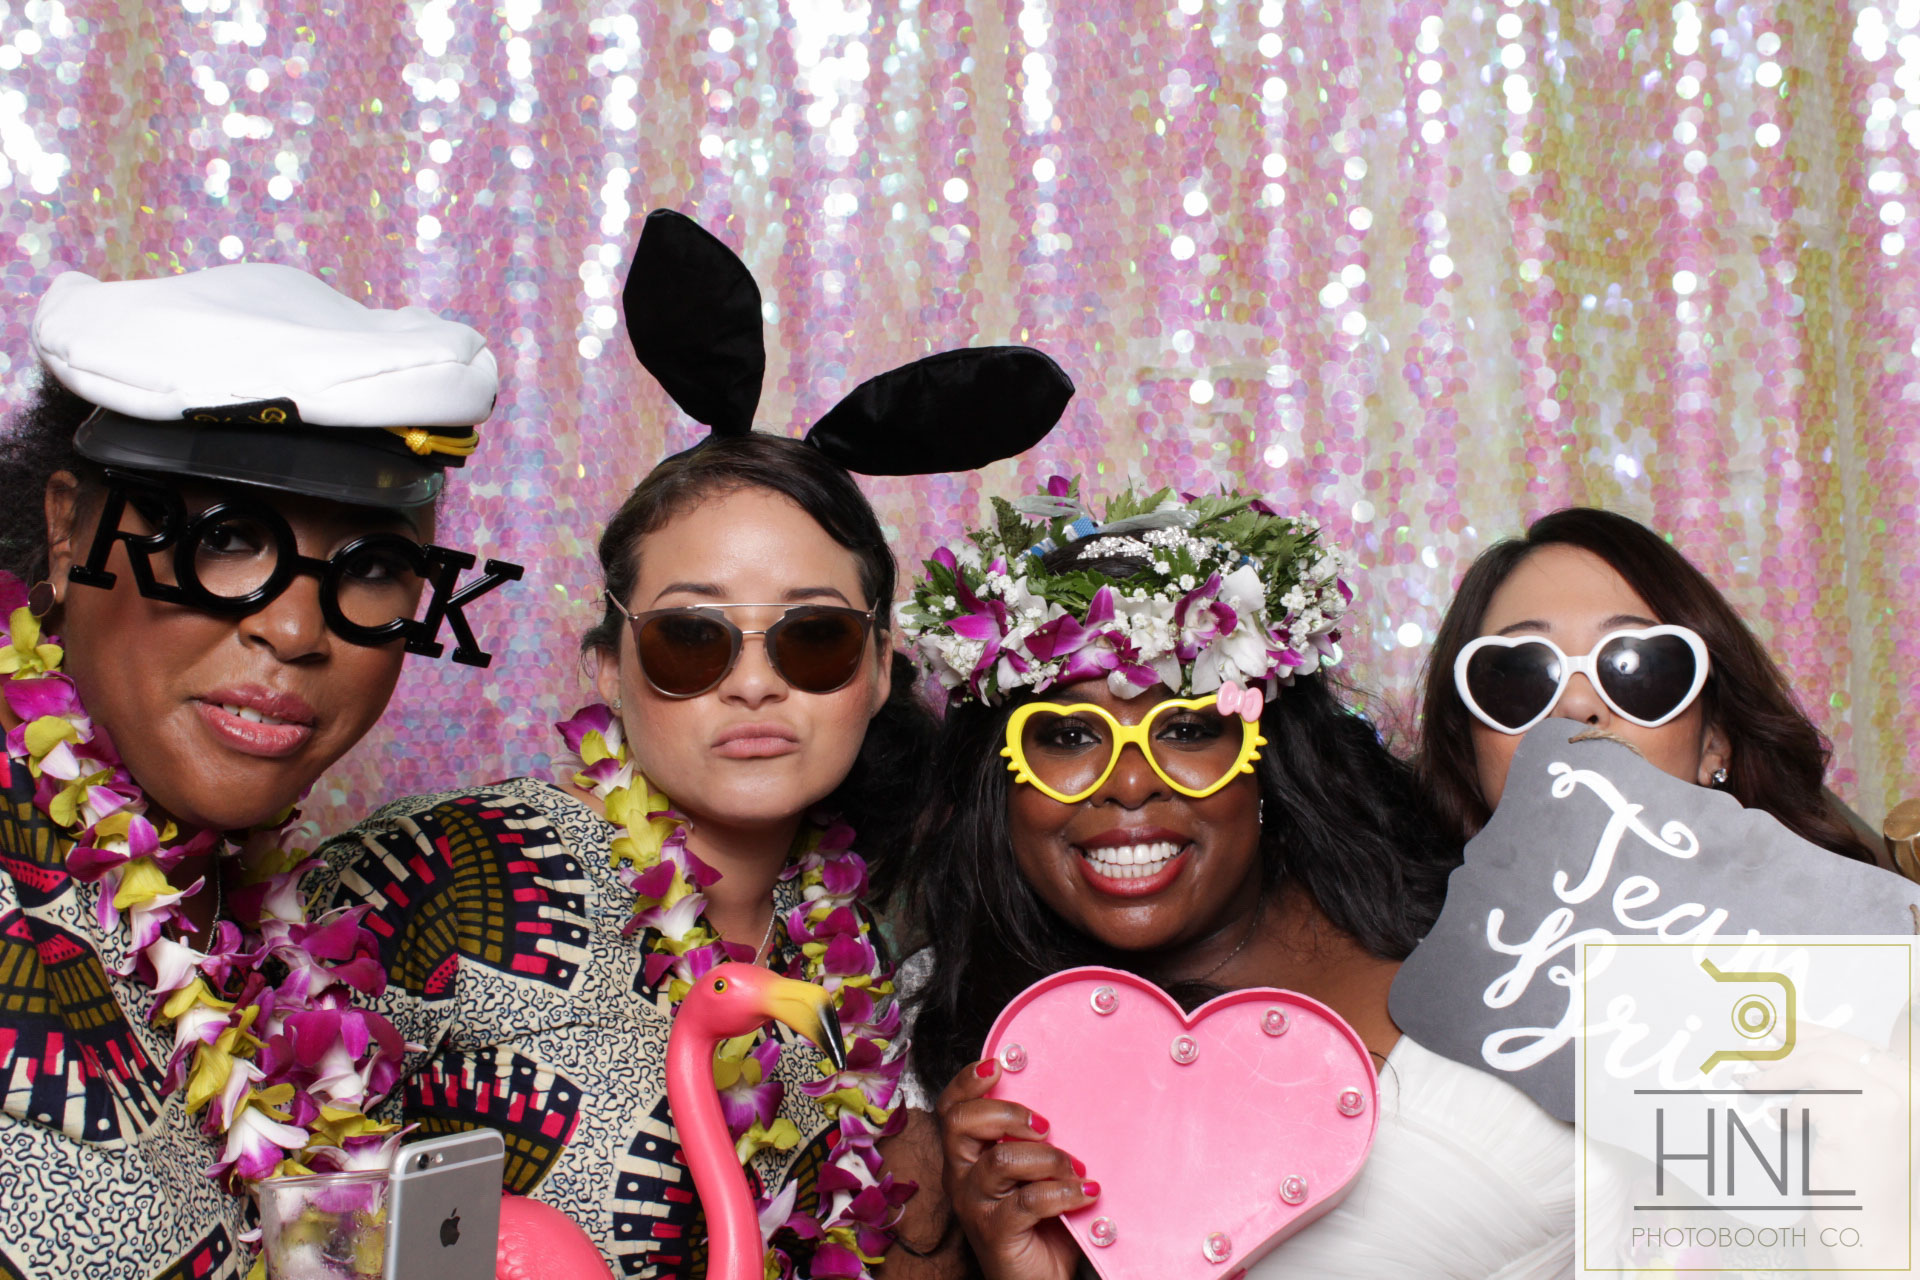 Yemi and Yang Wedding Photo booth Hiltion Hawaiian Village Resort Waikiki Oahu Hawaii -56.jpg